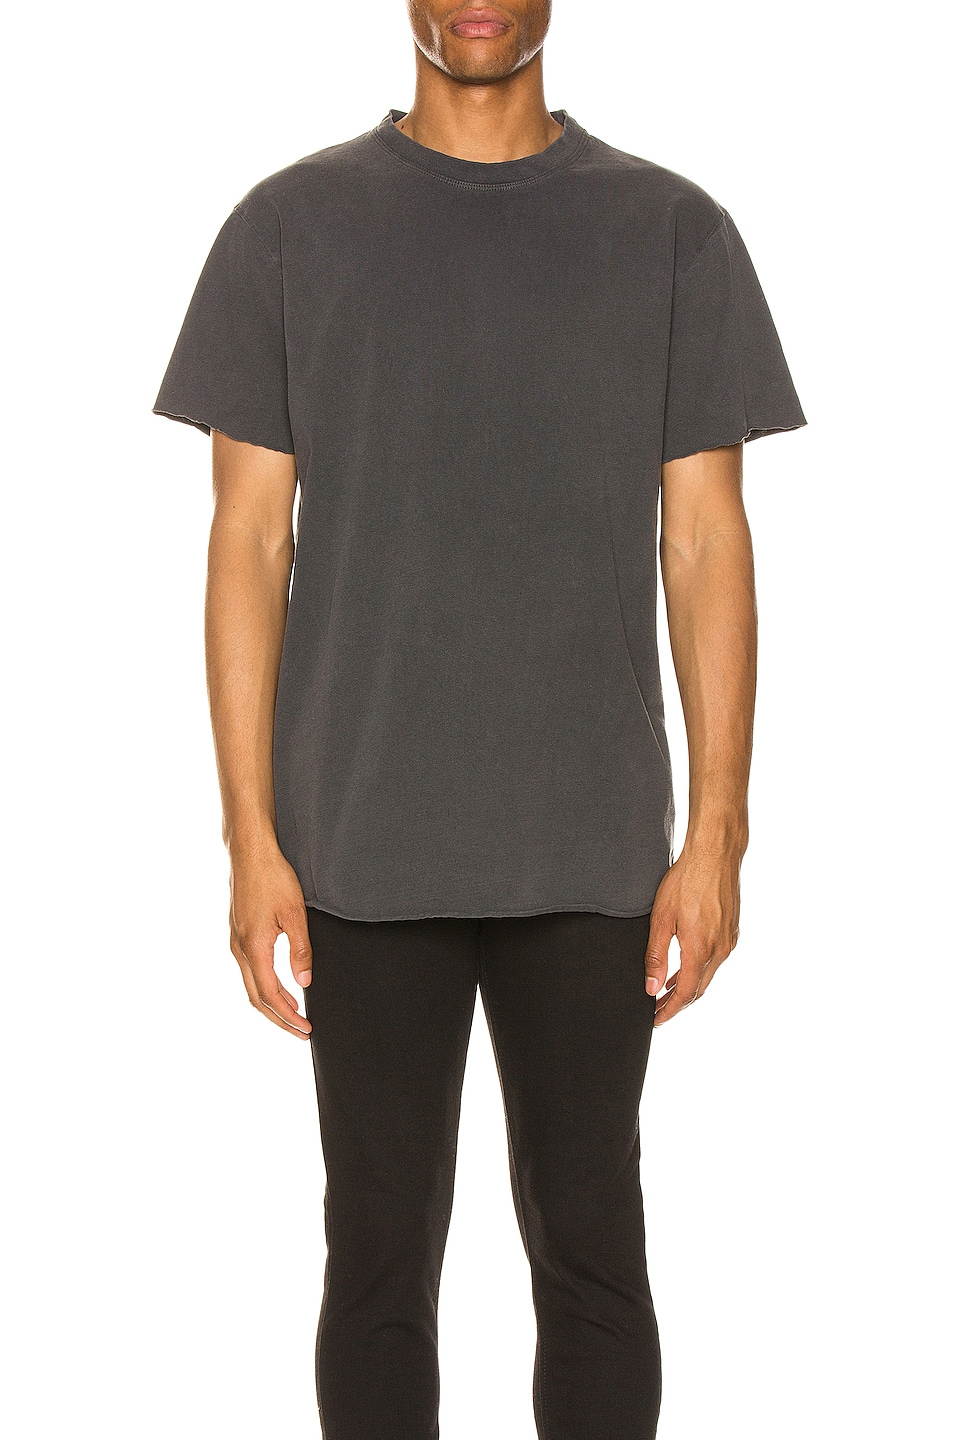 Image 1 of JOHN ELLIOTT Anti-Expo Tee in Carbon